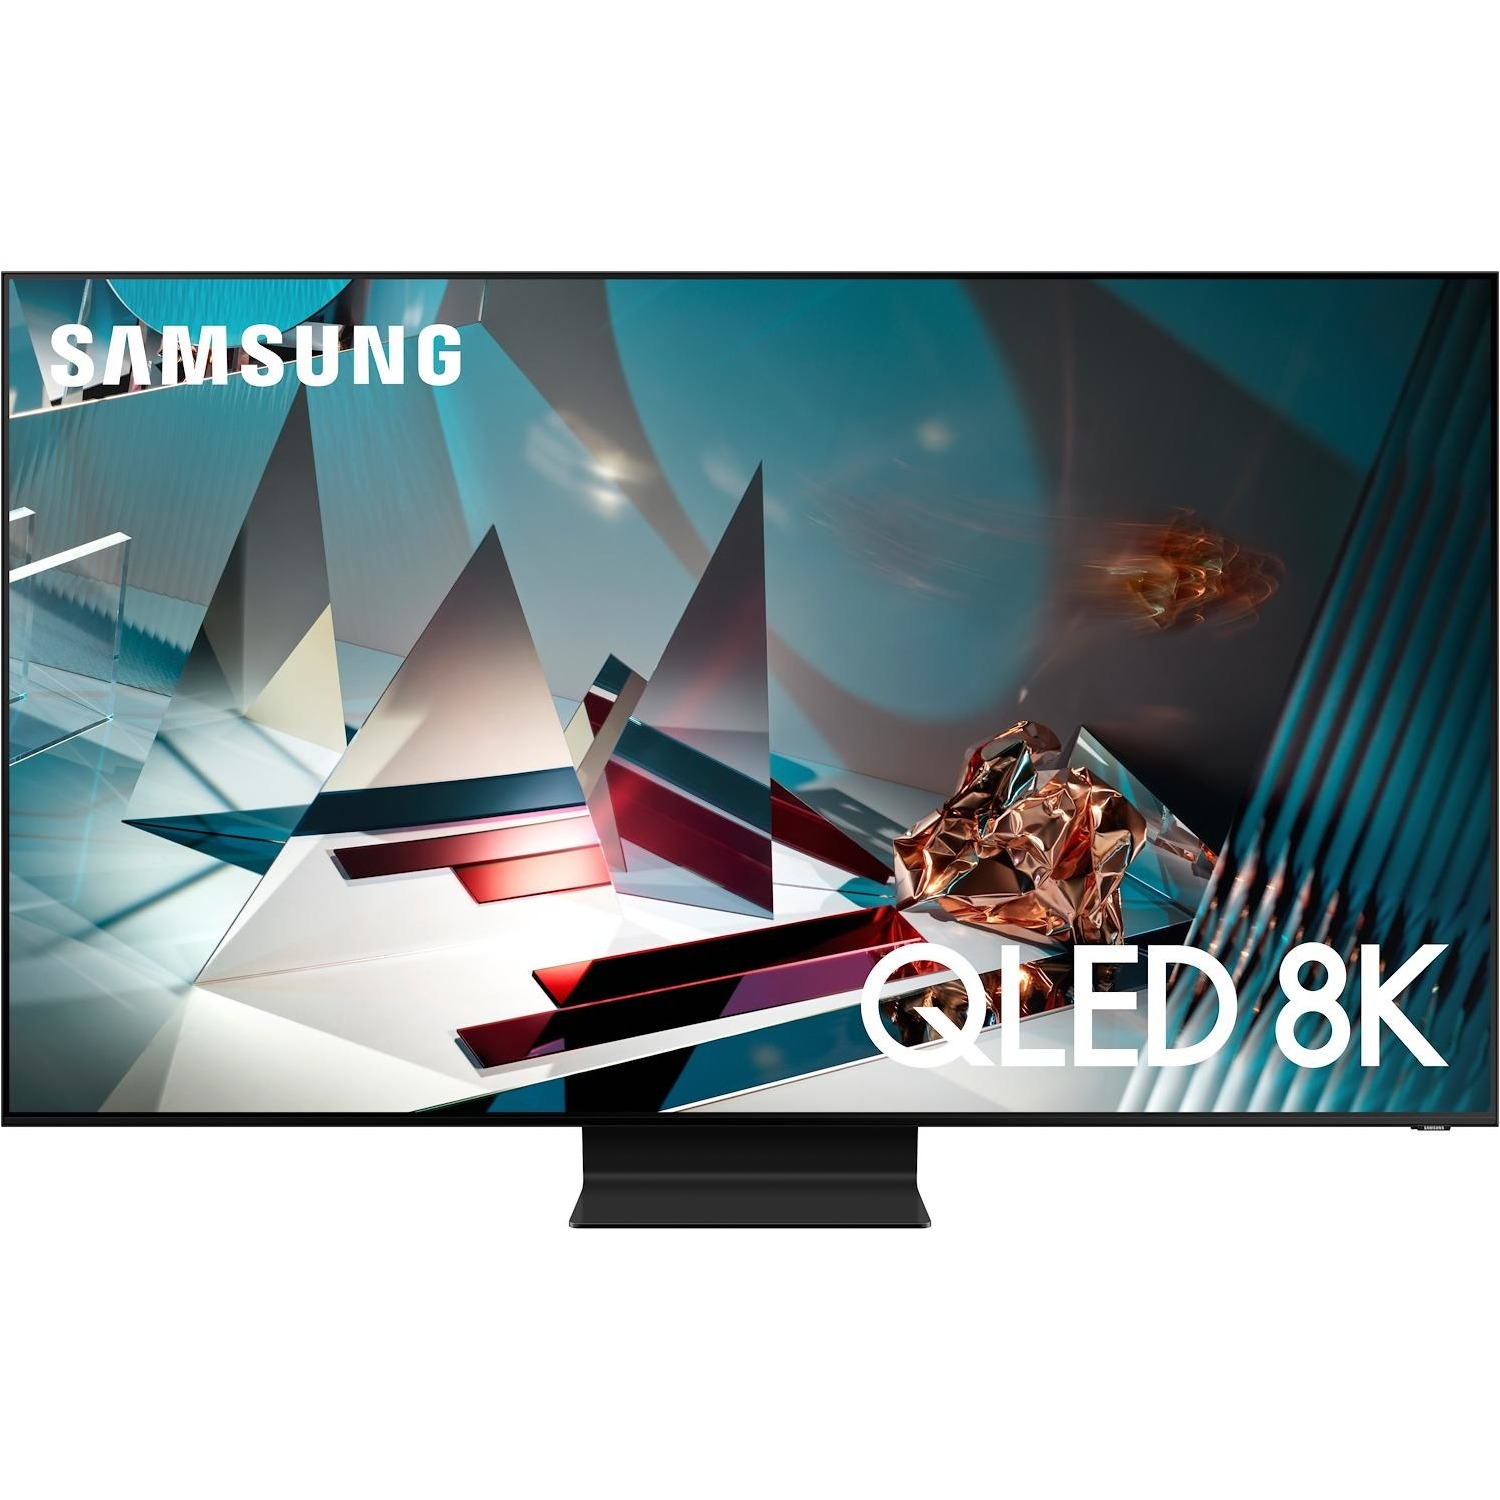 Immagine per TV LED Smart 8K Samsung 75Q800T da DIMOStore